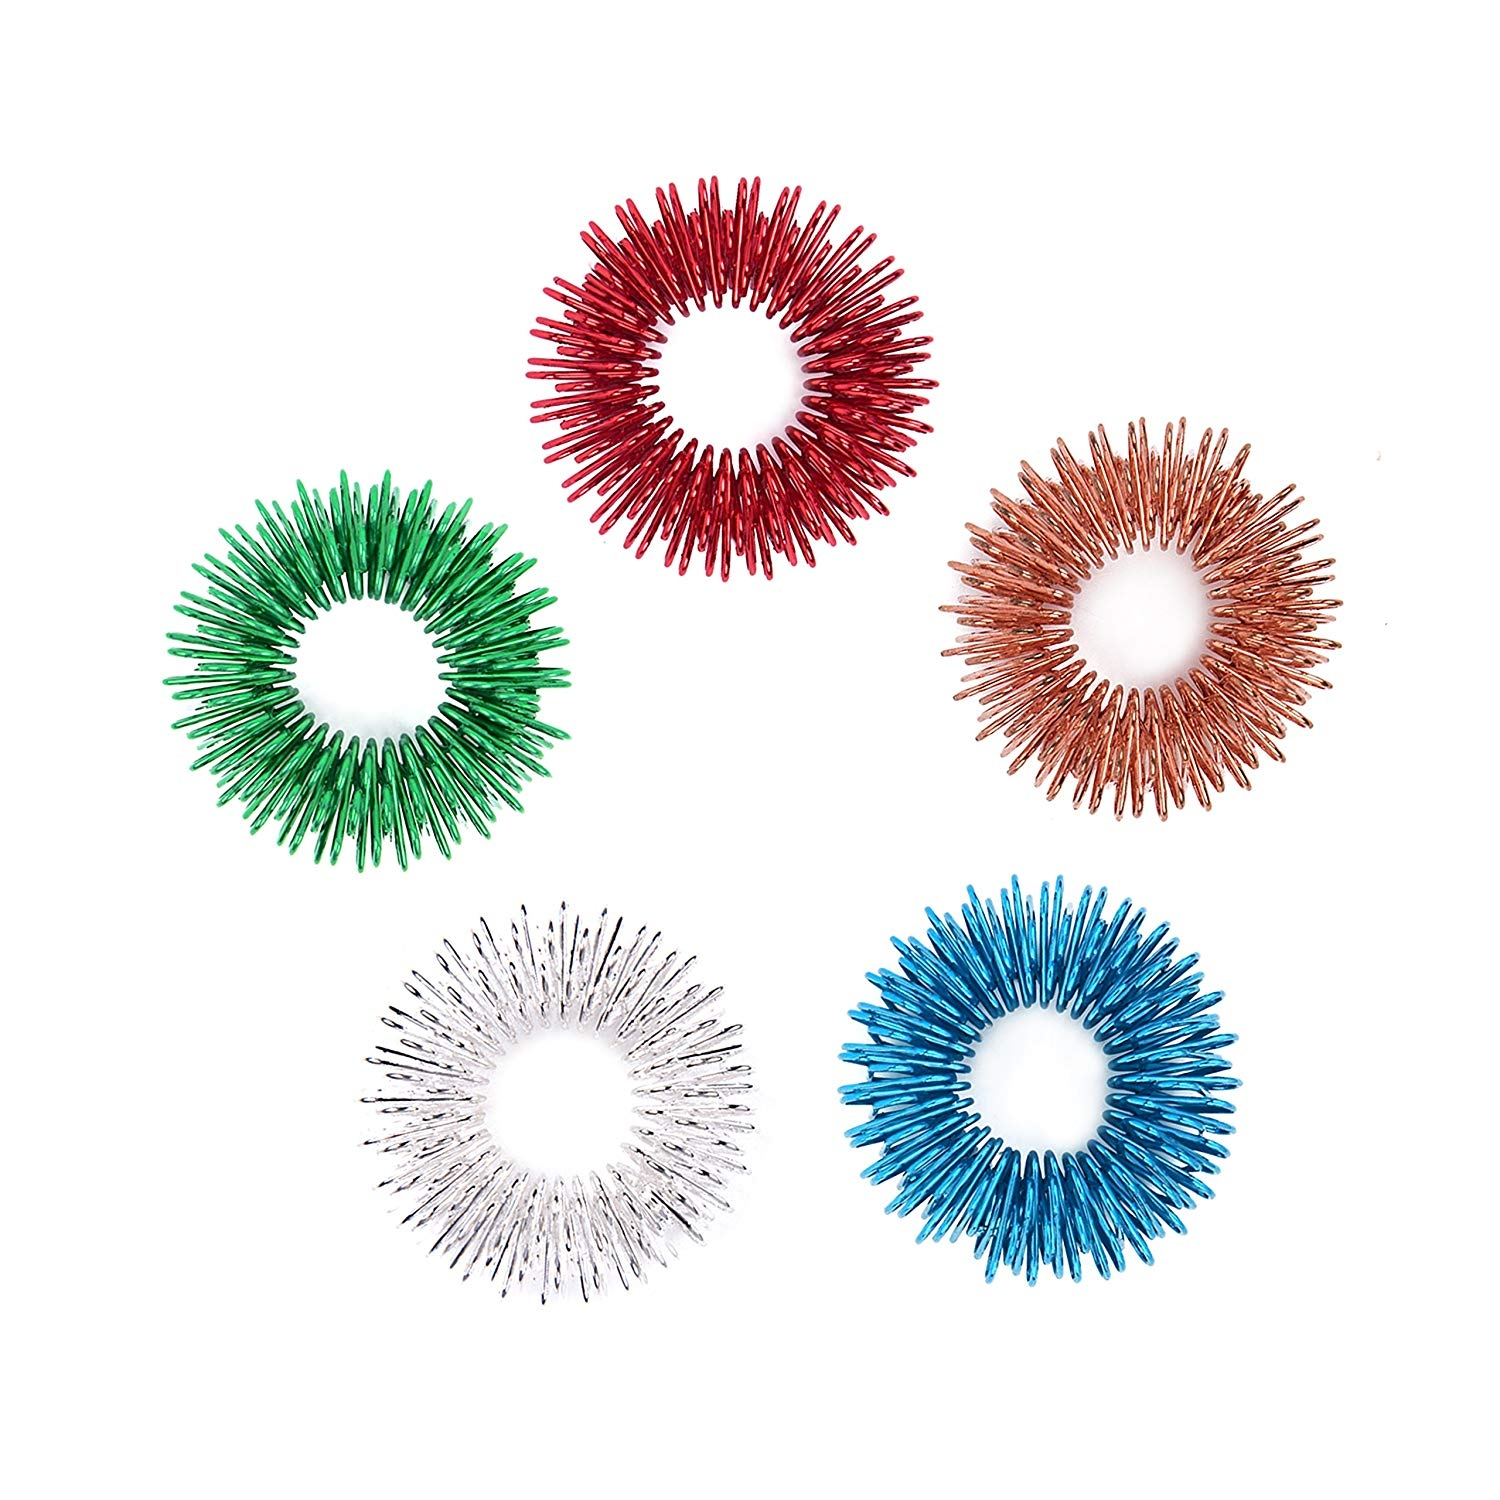 Acupressure Ring, set of 10